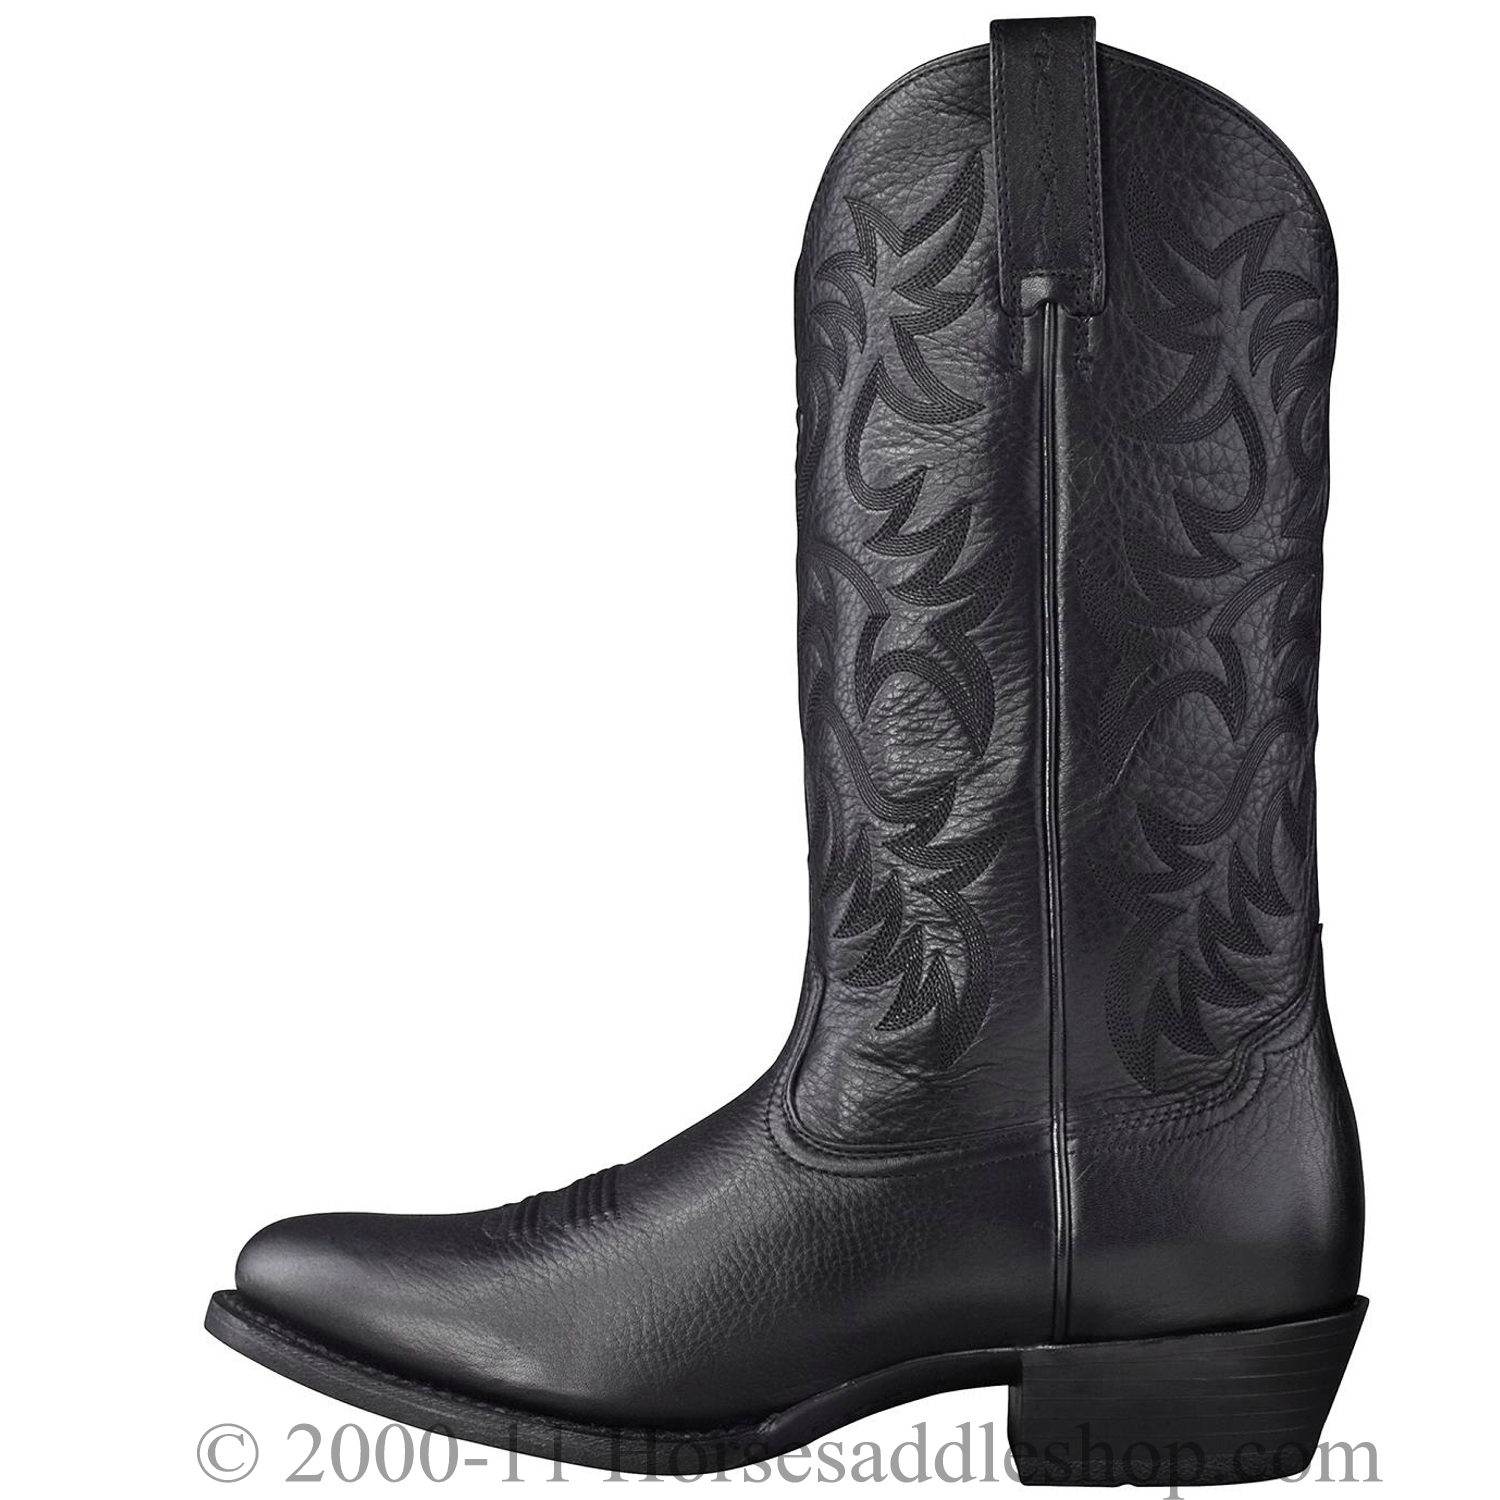 Black Ariat Boots 4Mhkvv20